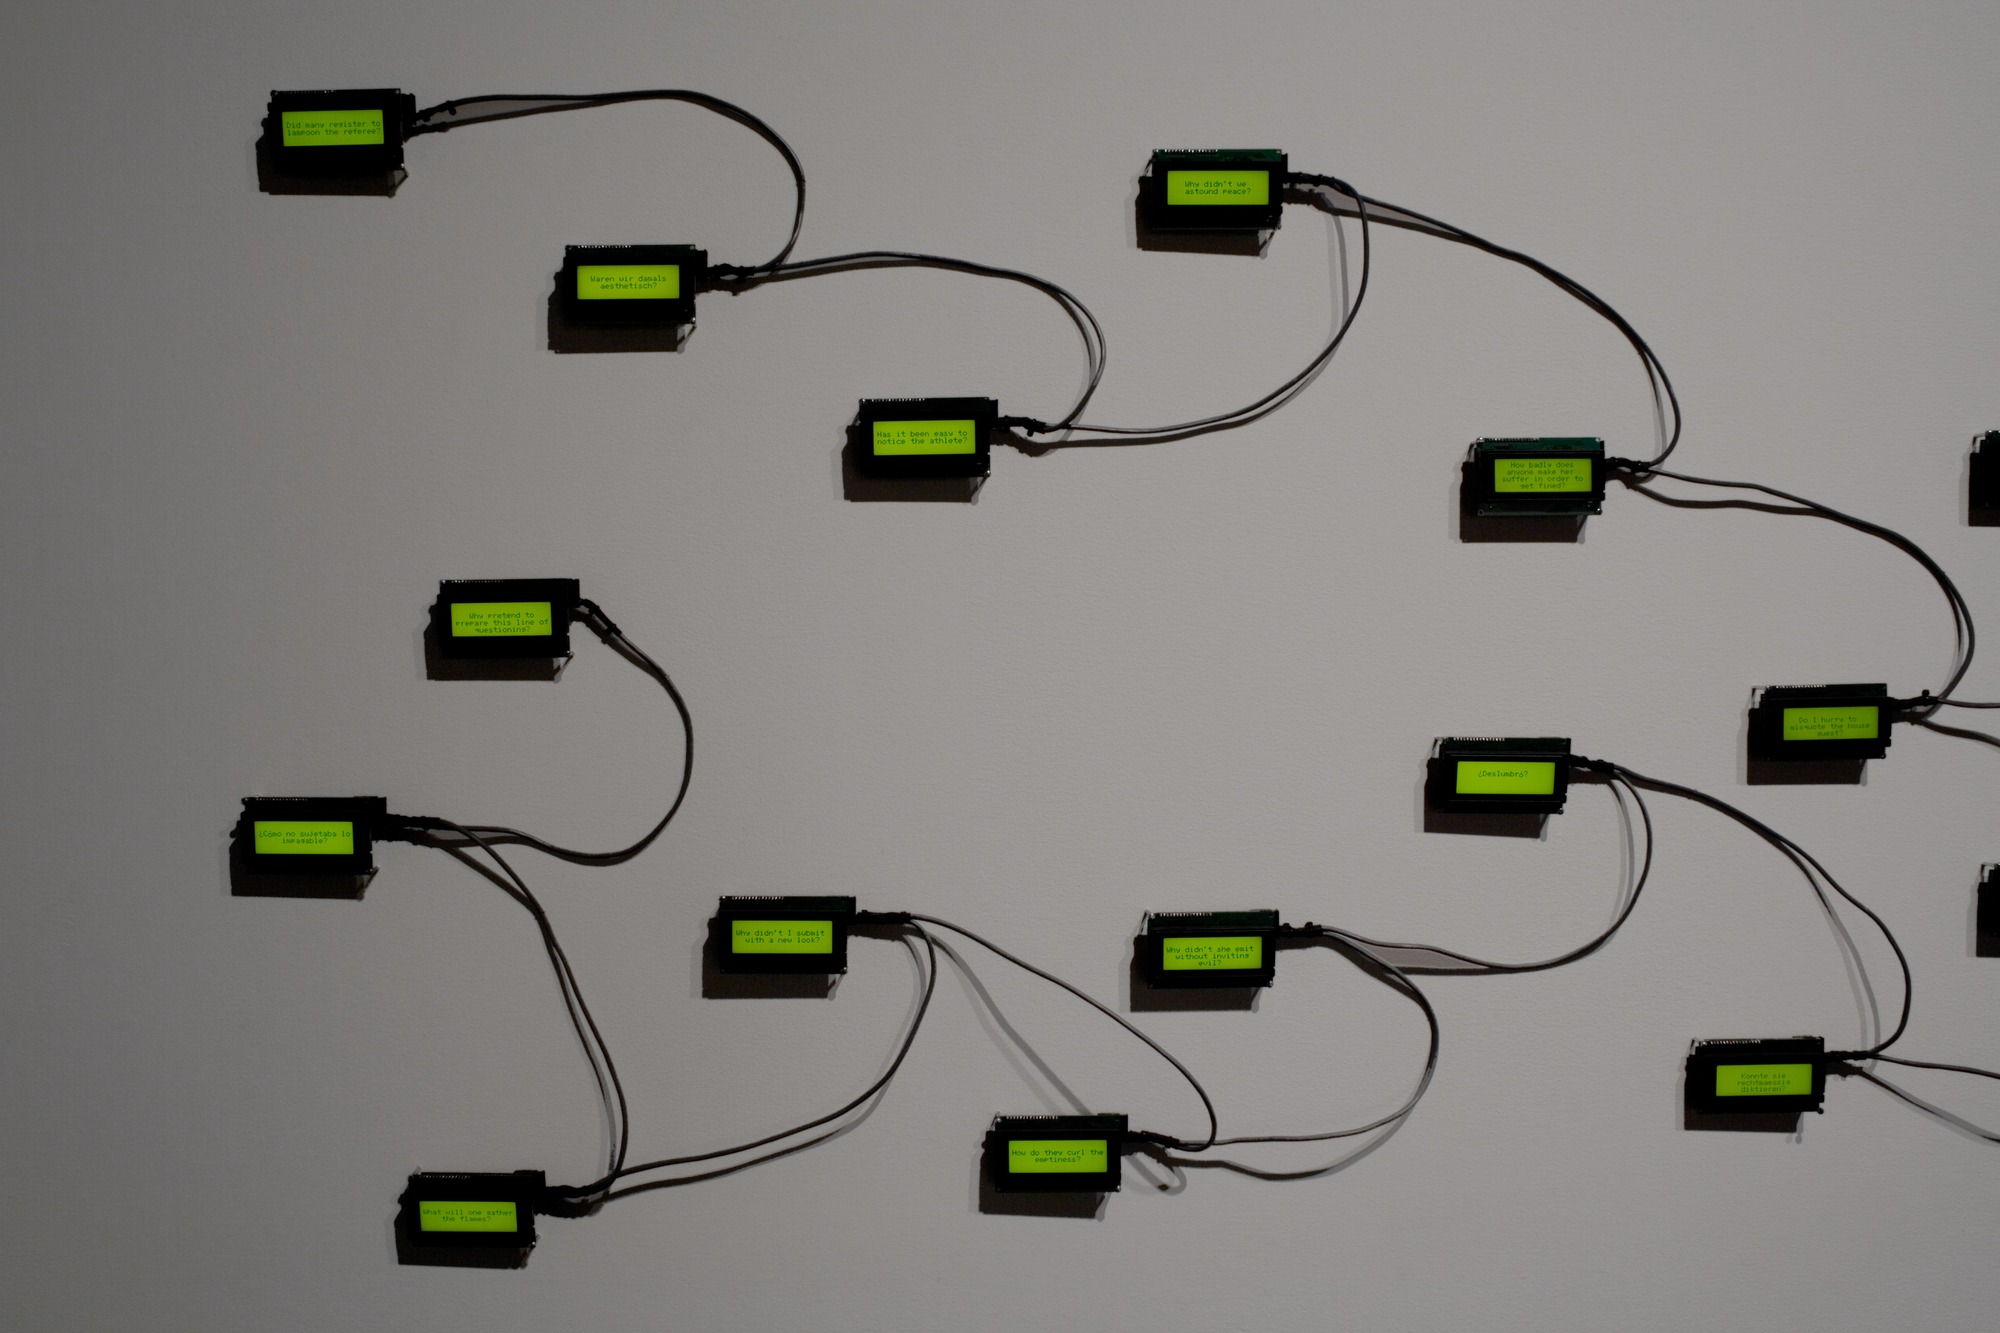 A photograph of an installation by Rafael Lozano-Hemmer that includes several tiny green screens that are wired together. It appears there's different text on each of the screens.